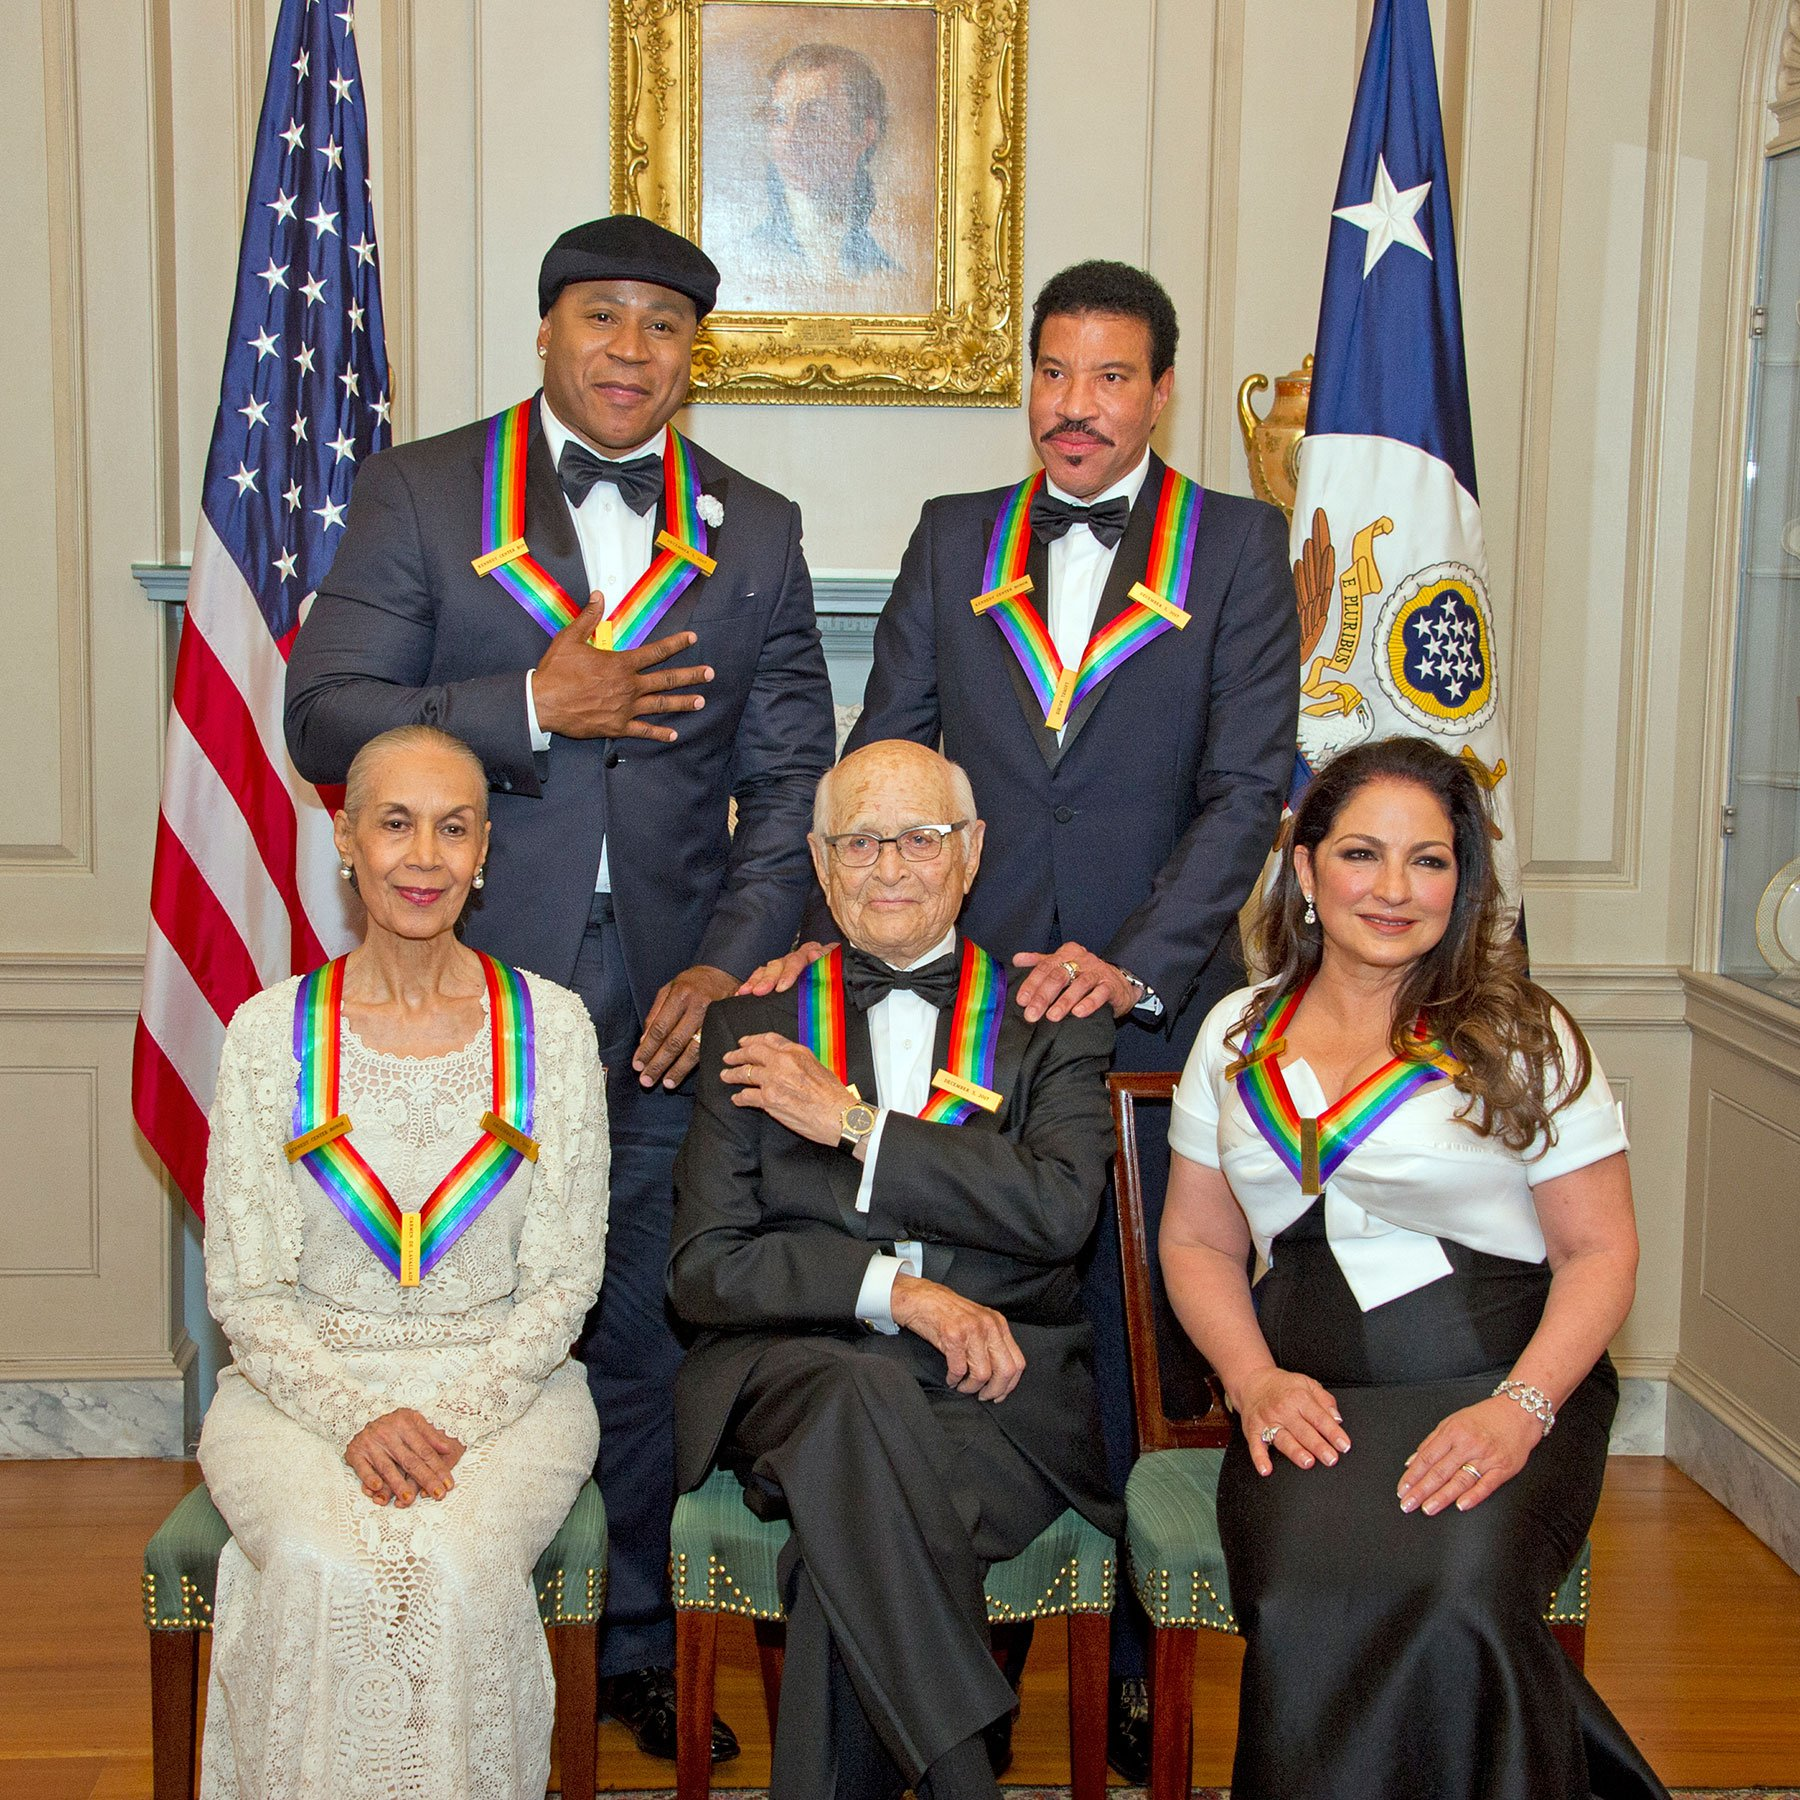 Kennedy Center honorees had no regrets about snubbing Trump: 'No distractions!' said LL Cool J